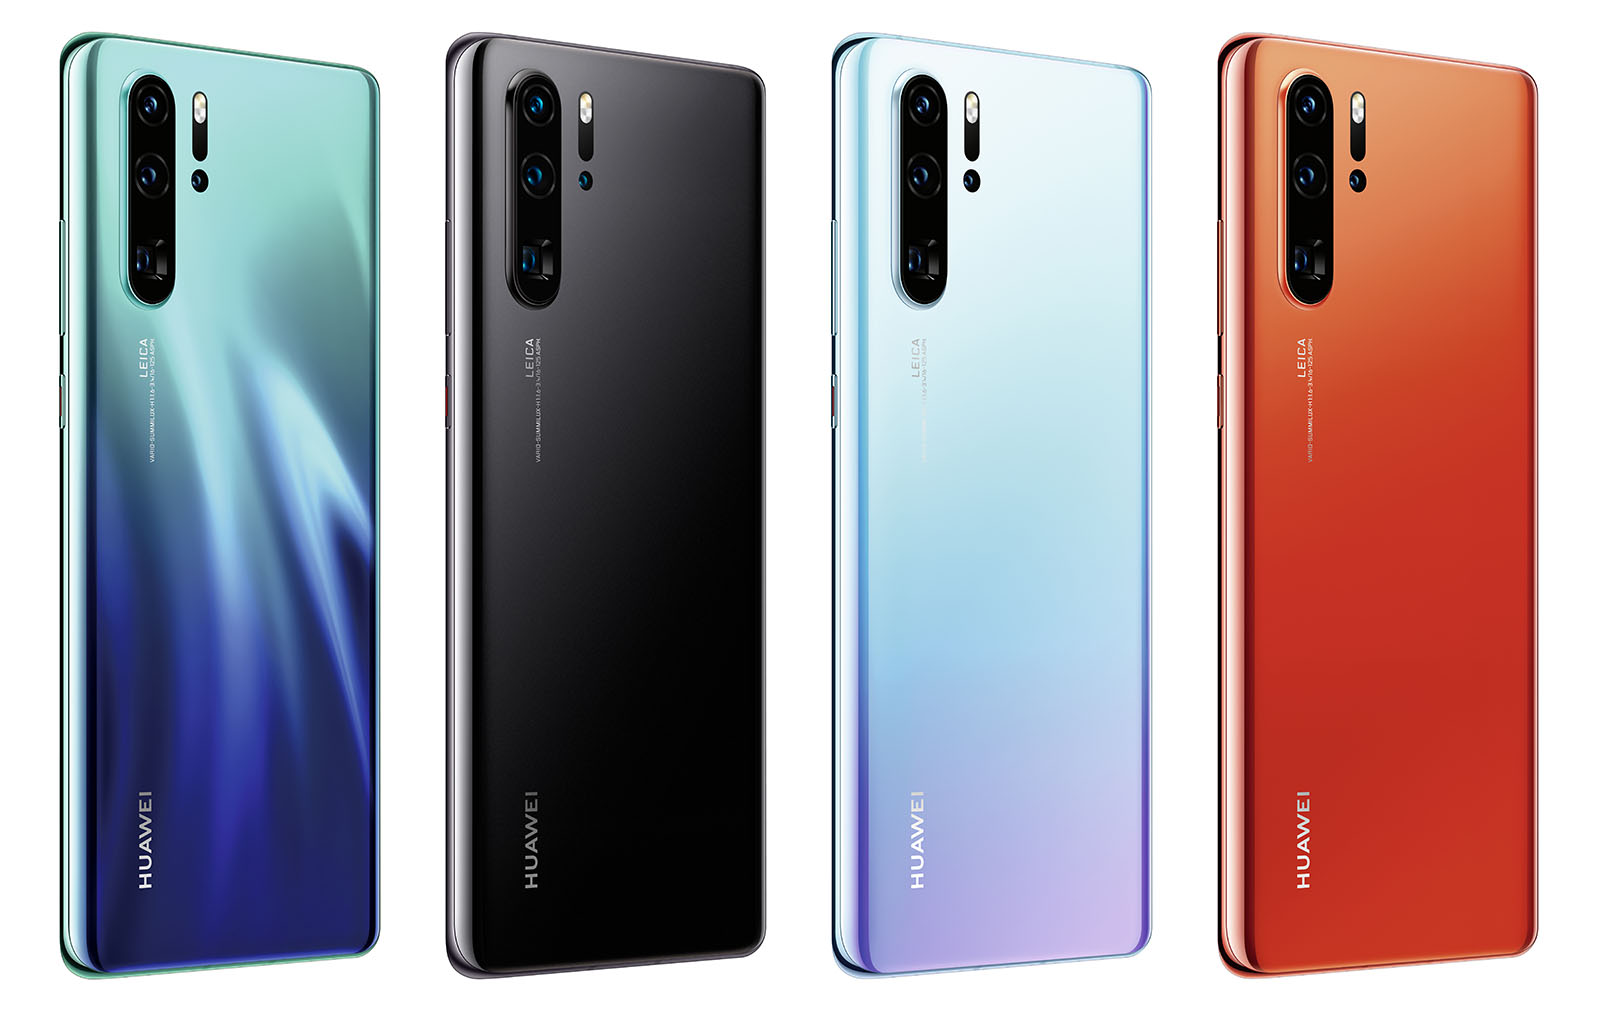 Huawei P30 Pro in Aurora, Black, Breathing Crystal, Amber Sunrise